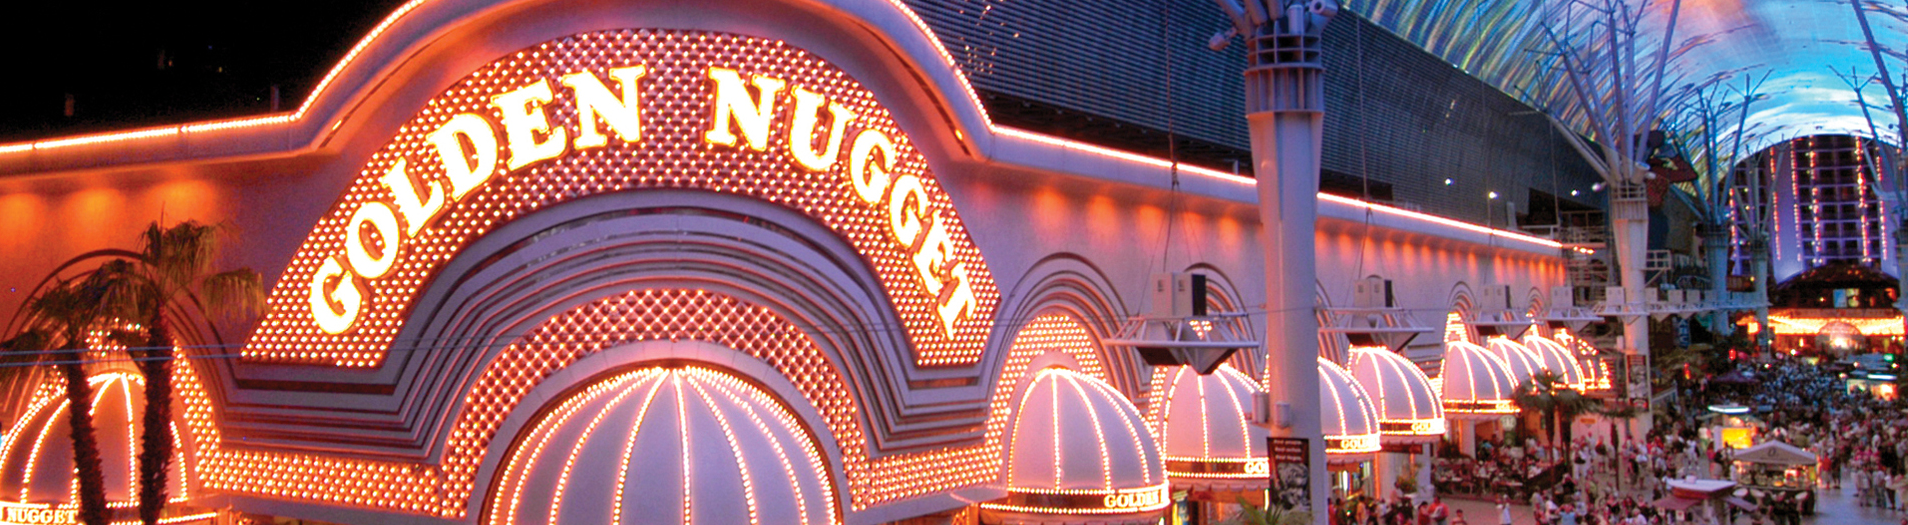 The crown jewel of downtown has just added another great reason to visit Fremont Street, tourists and locals alike can now enjoy eight uniquely different cocktails at different restaurants and bars located throughout the Golden Nugget. The best part of all is that this booze-filled bounce is set at a very wallet-friendly price of just $40. Considering that the average price of a cocktail in a casino typically cost between $10-15 each, this is a great way to take in all of the sights and sounds of downtown without getting the life sucked out of your wallet leaving you with plenty of cash for one of those Fremont Street 3-foot margaritas.